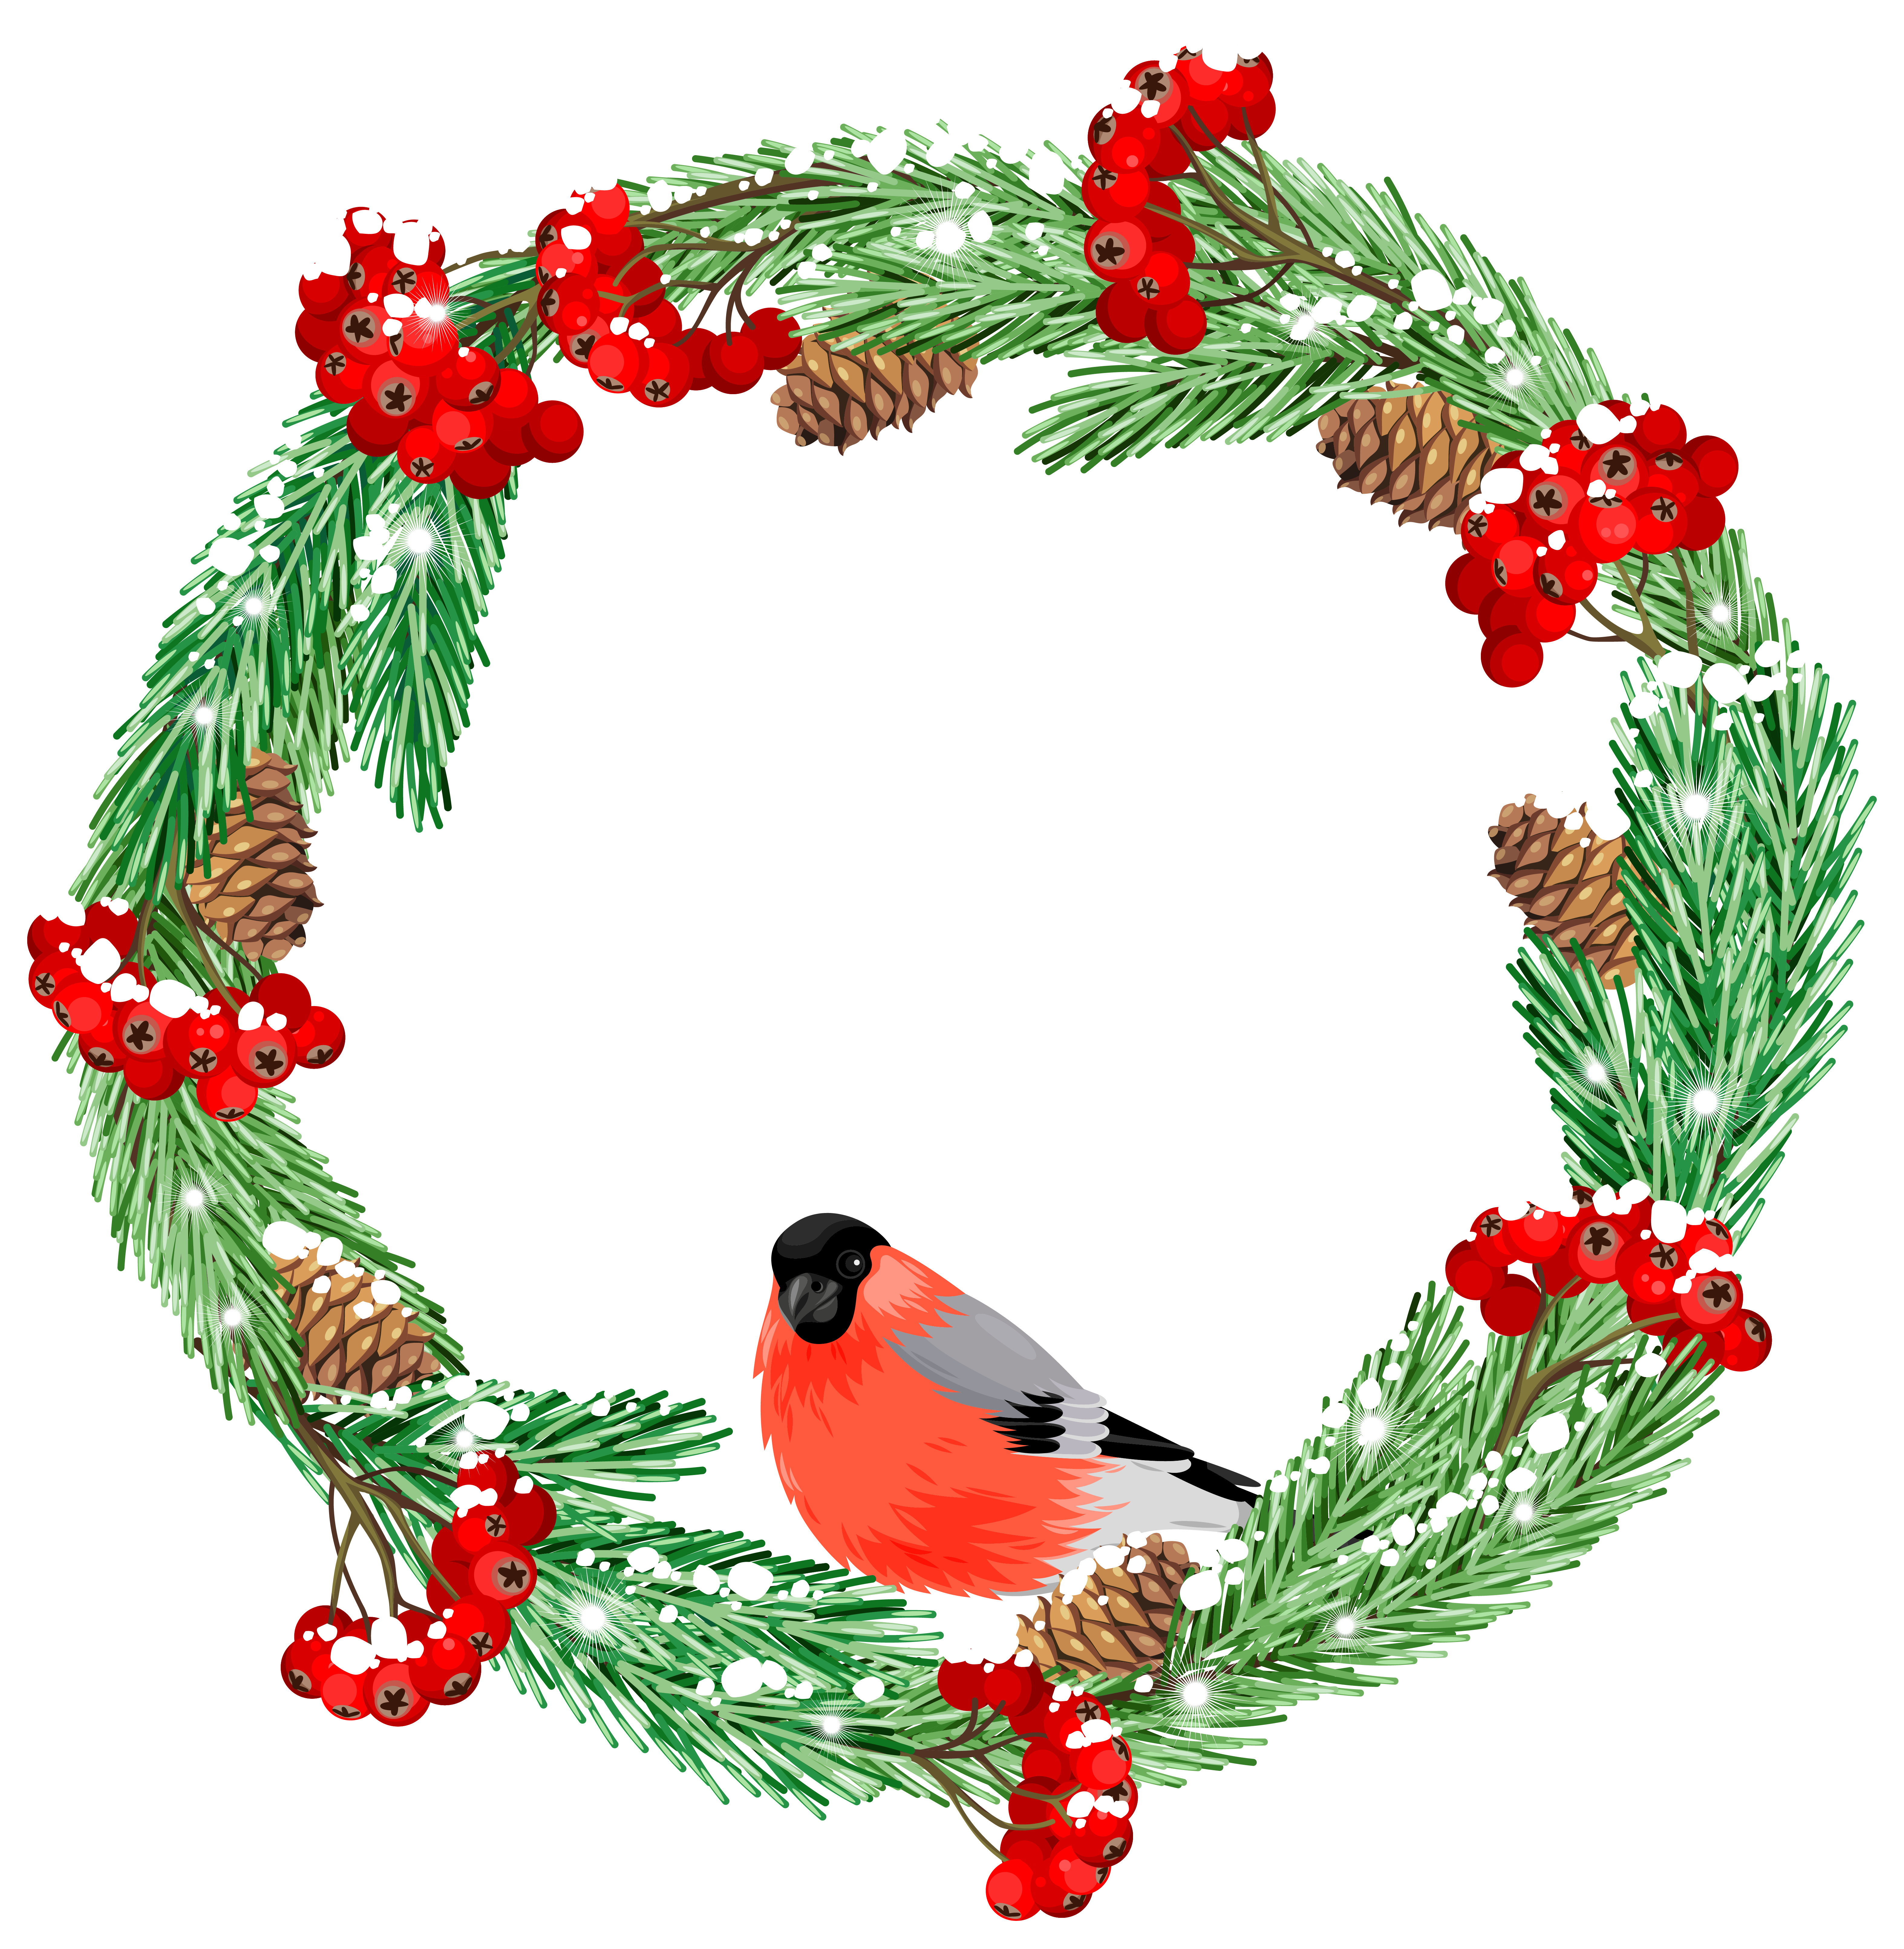 Winter flower clipart clipart royalty free Green Winter Wreath with Bird PNG Clip Art Image | Gallery ... clipart royalty free